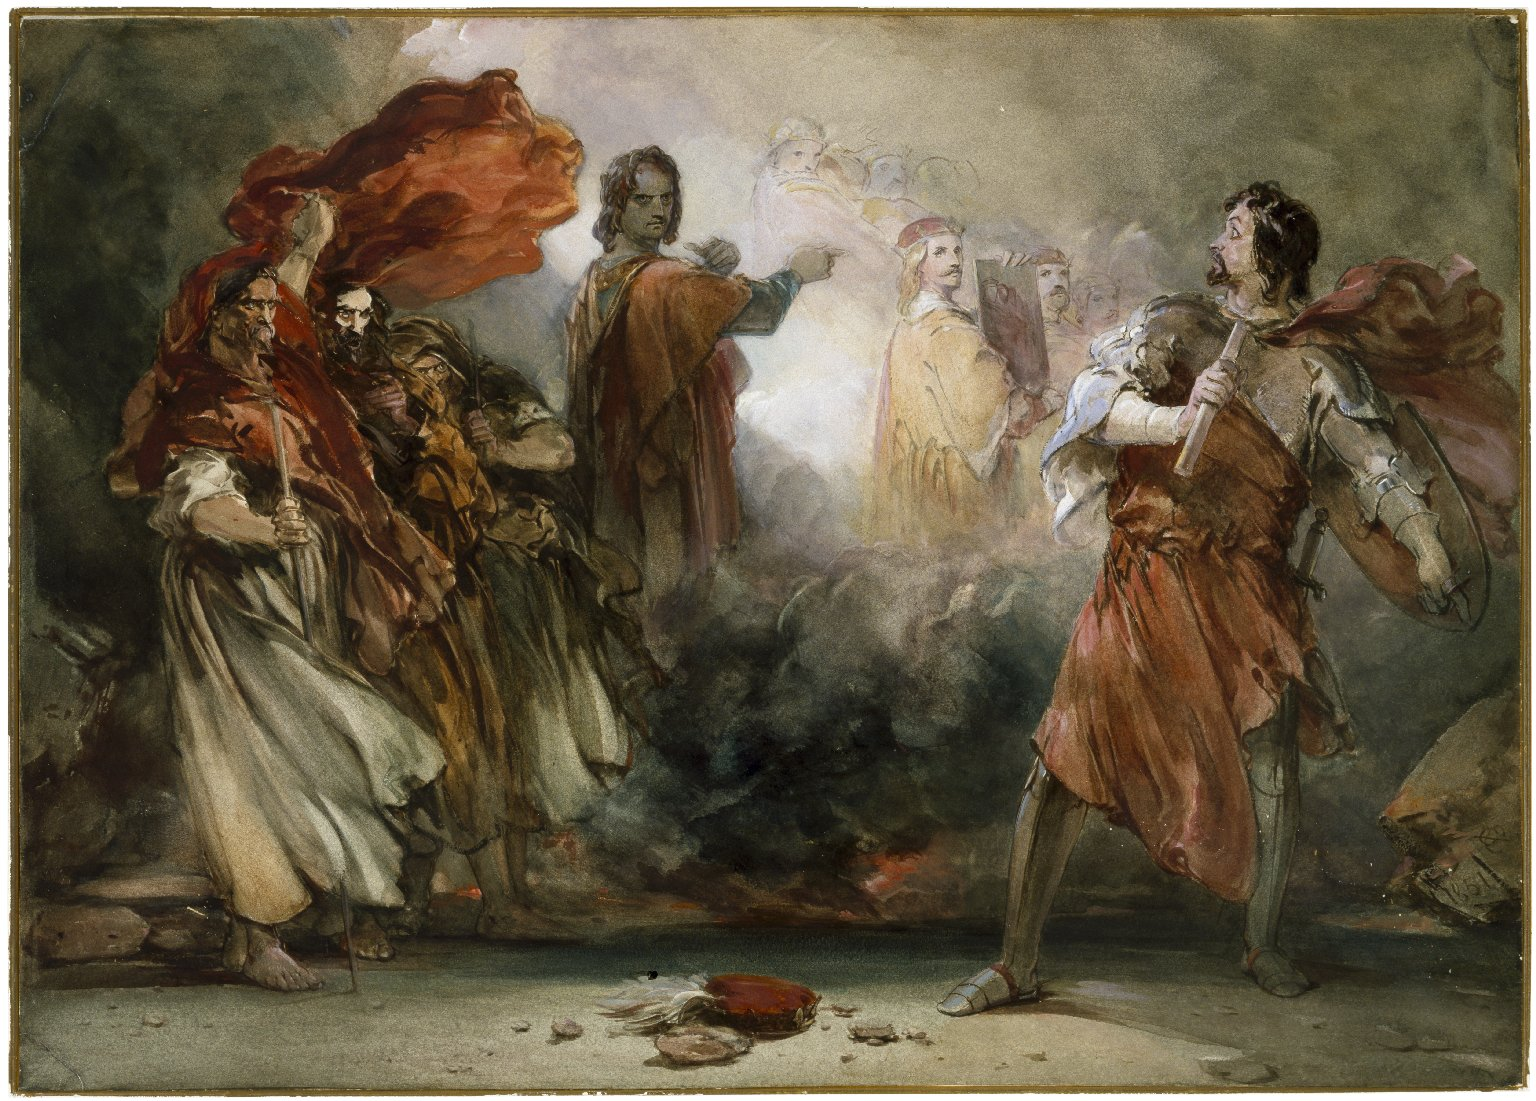 [Macbeth, Banquo, and the witches]